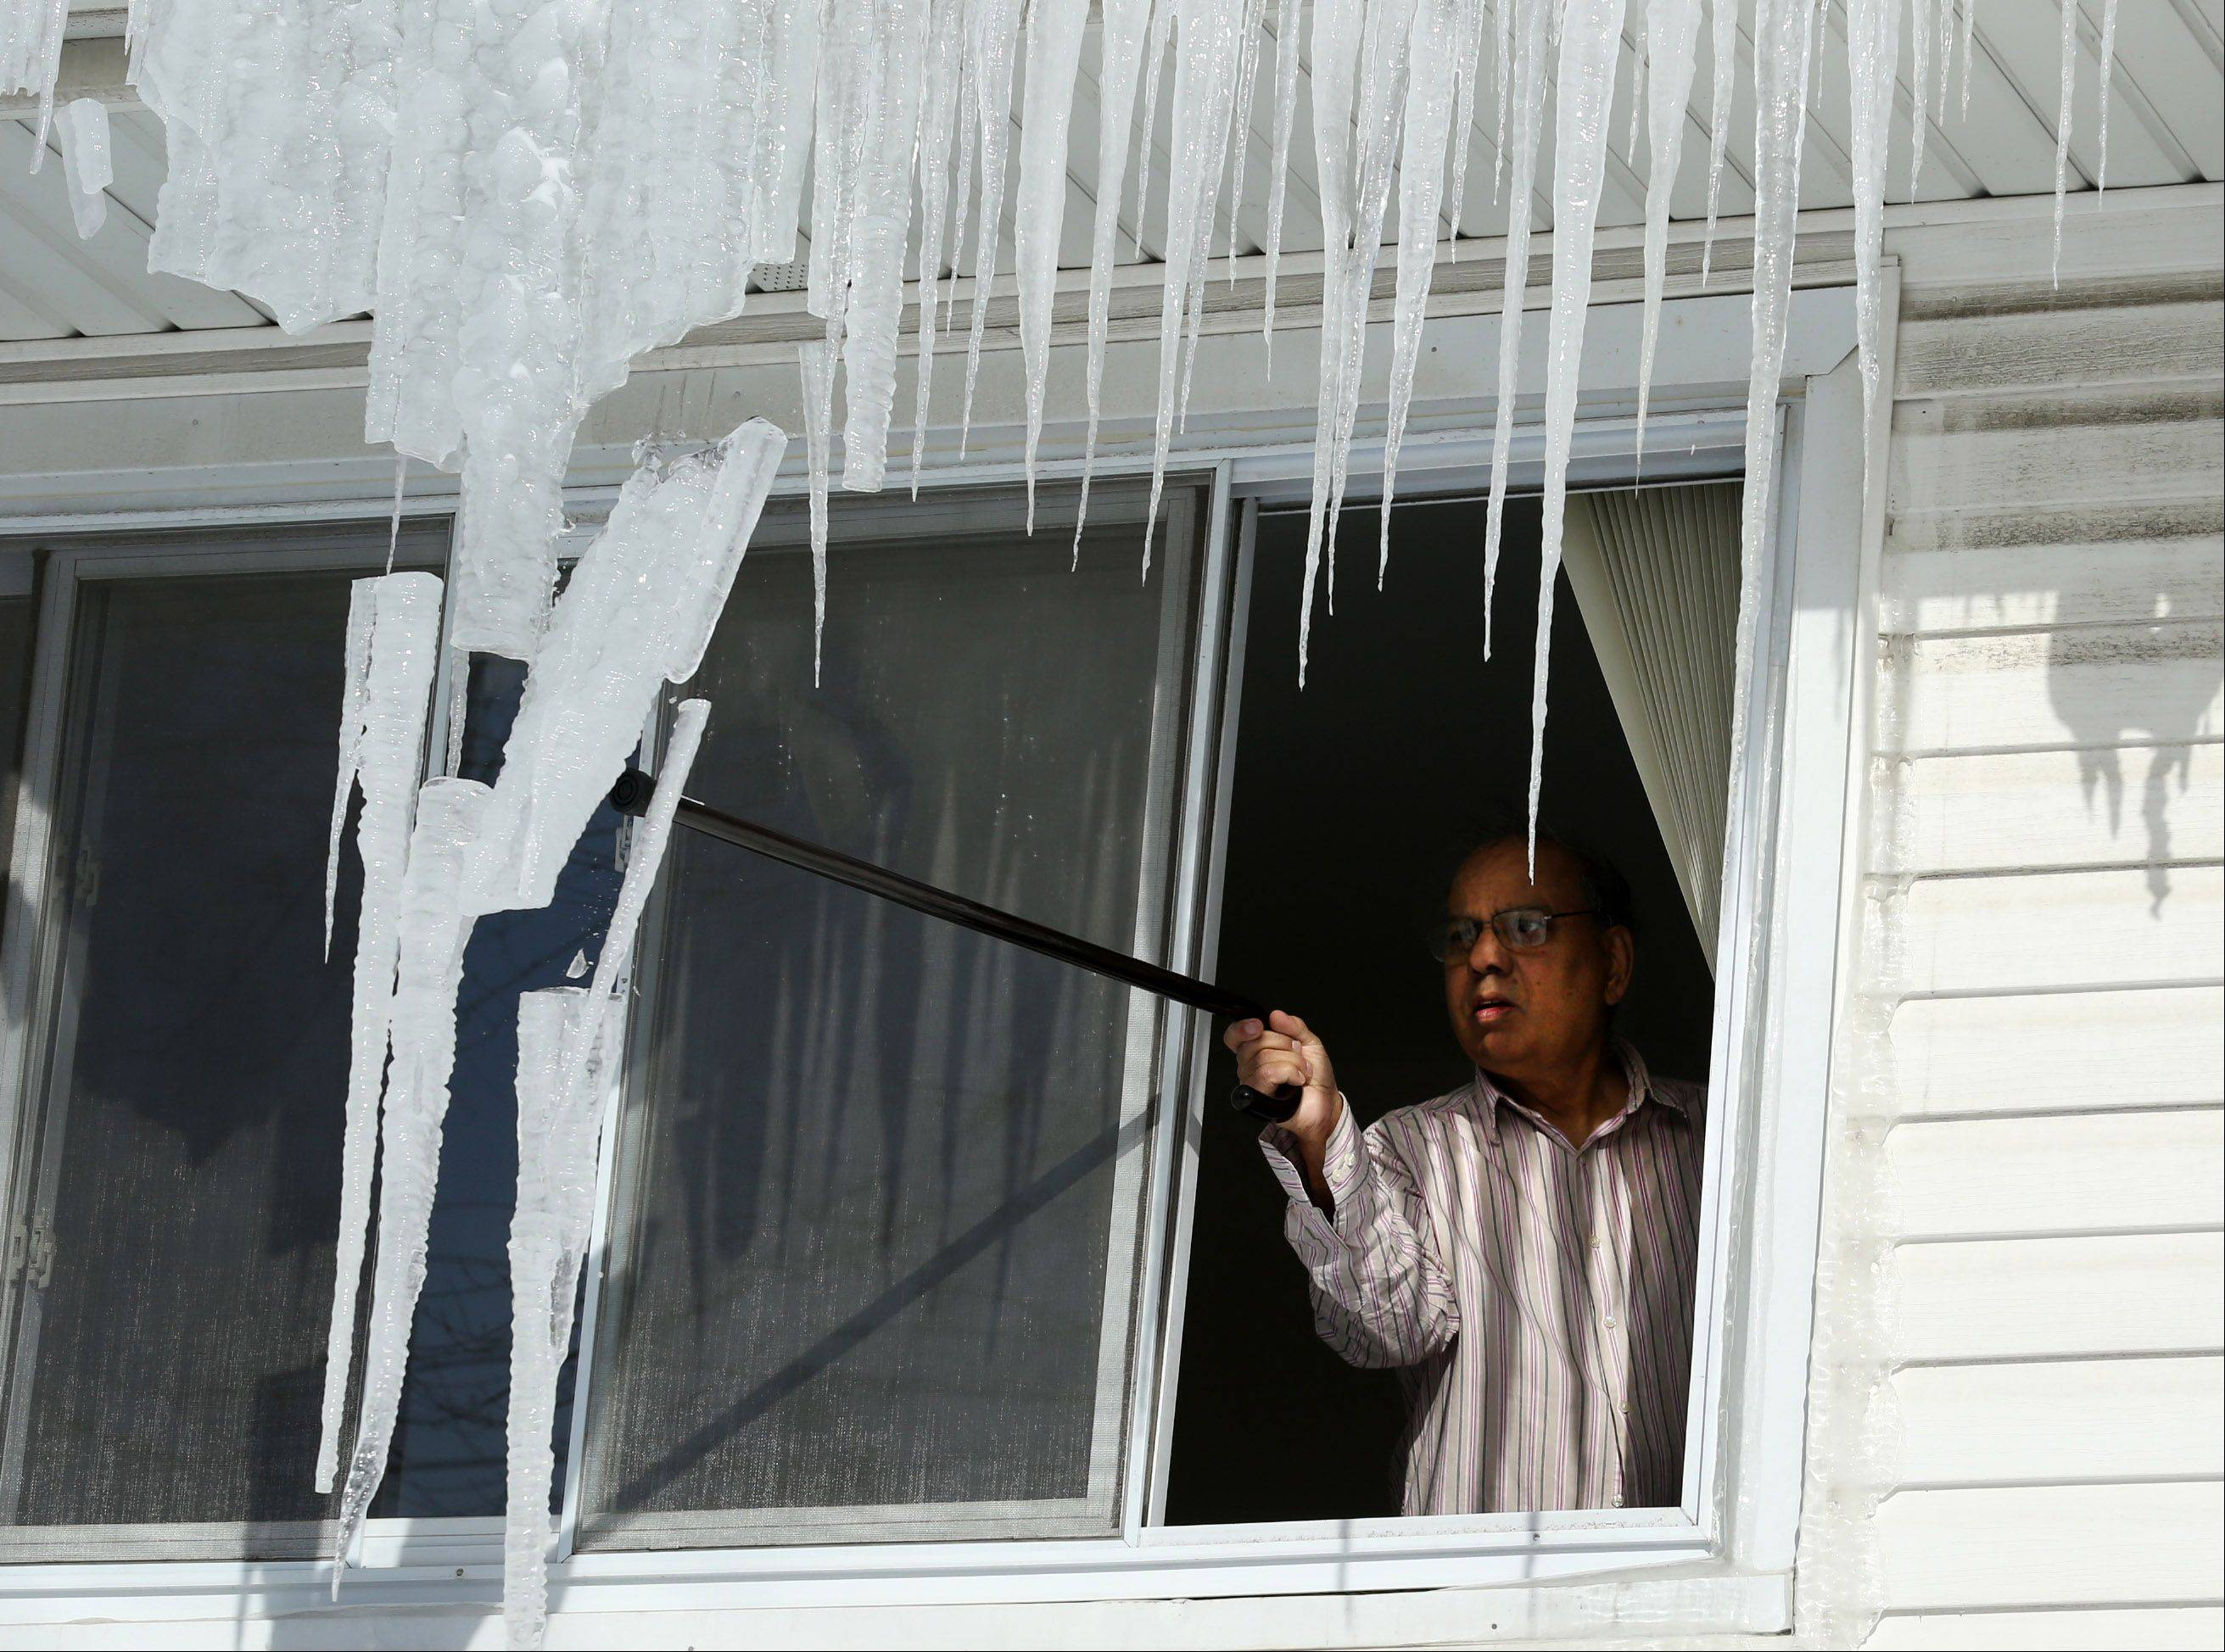 From a second-floor window, Mohammad Mohyuddin knocks icicles off of his home in Rolling Meadows using a walking cane on Wednesday.